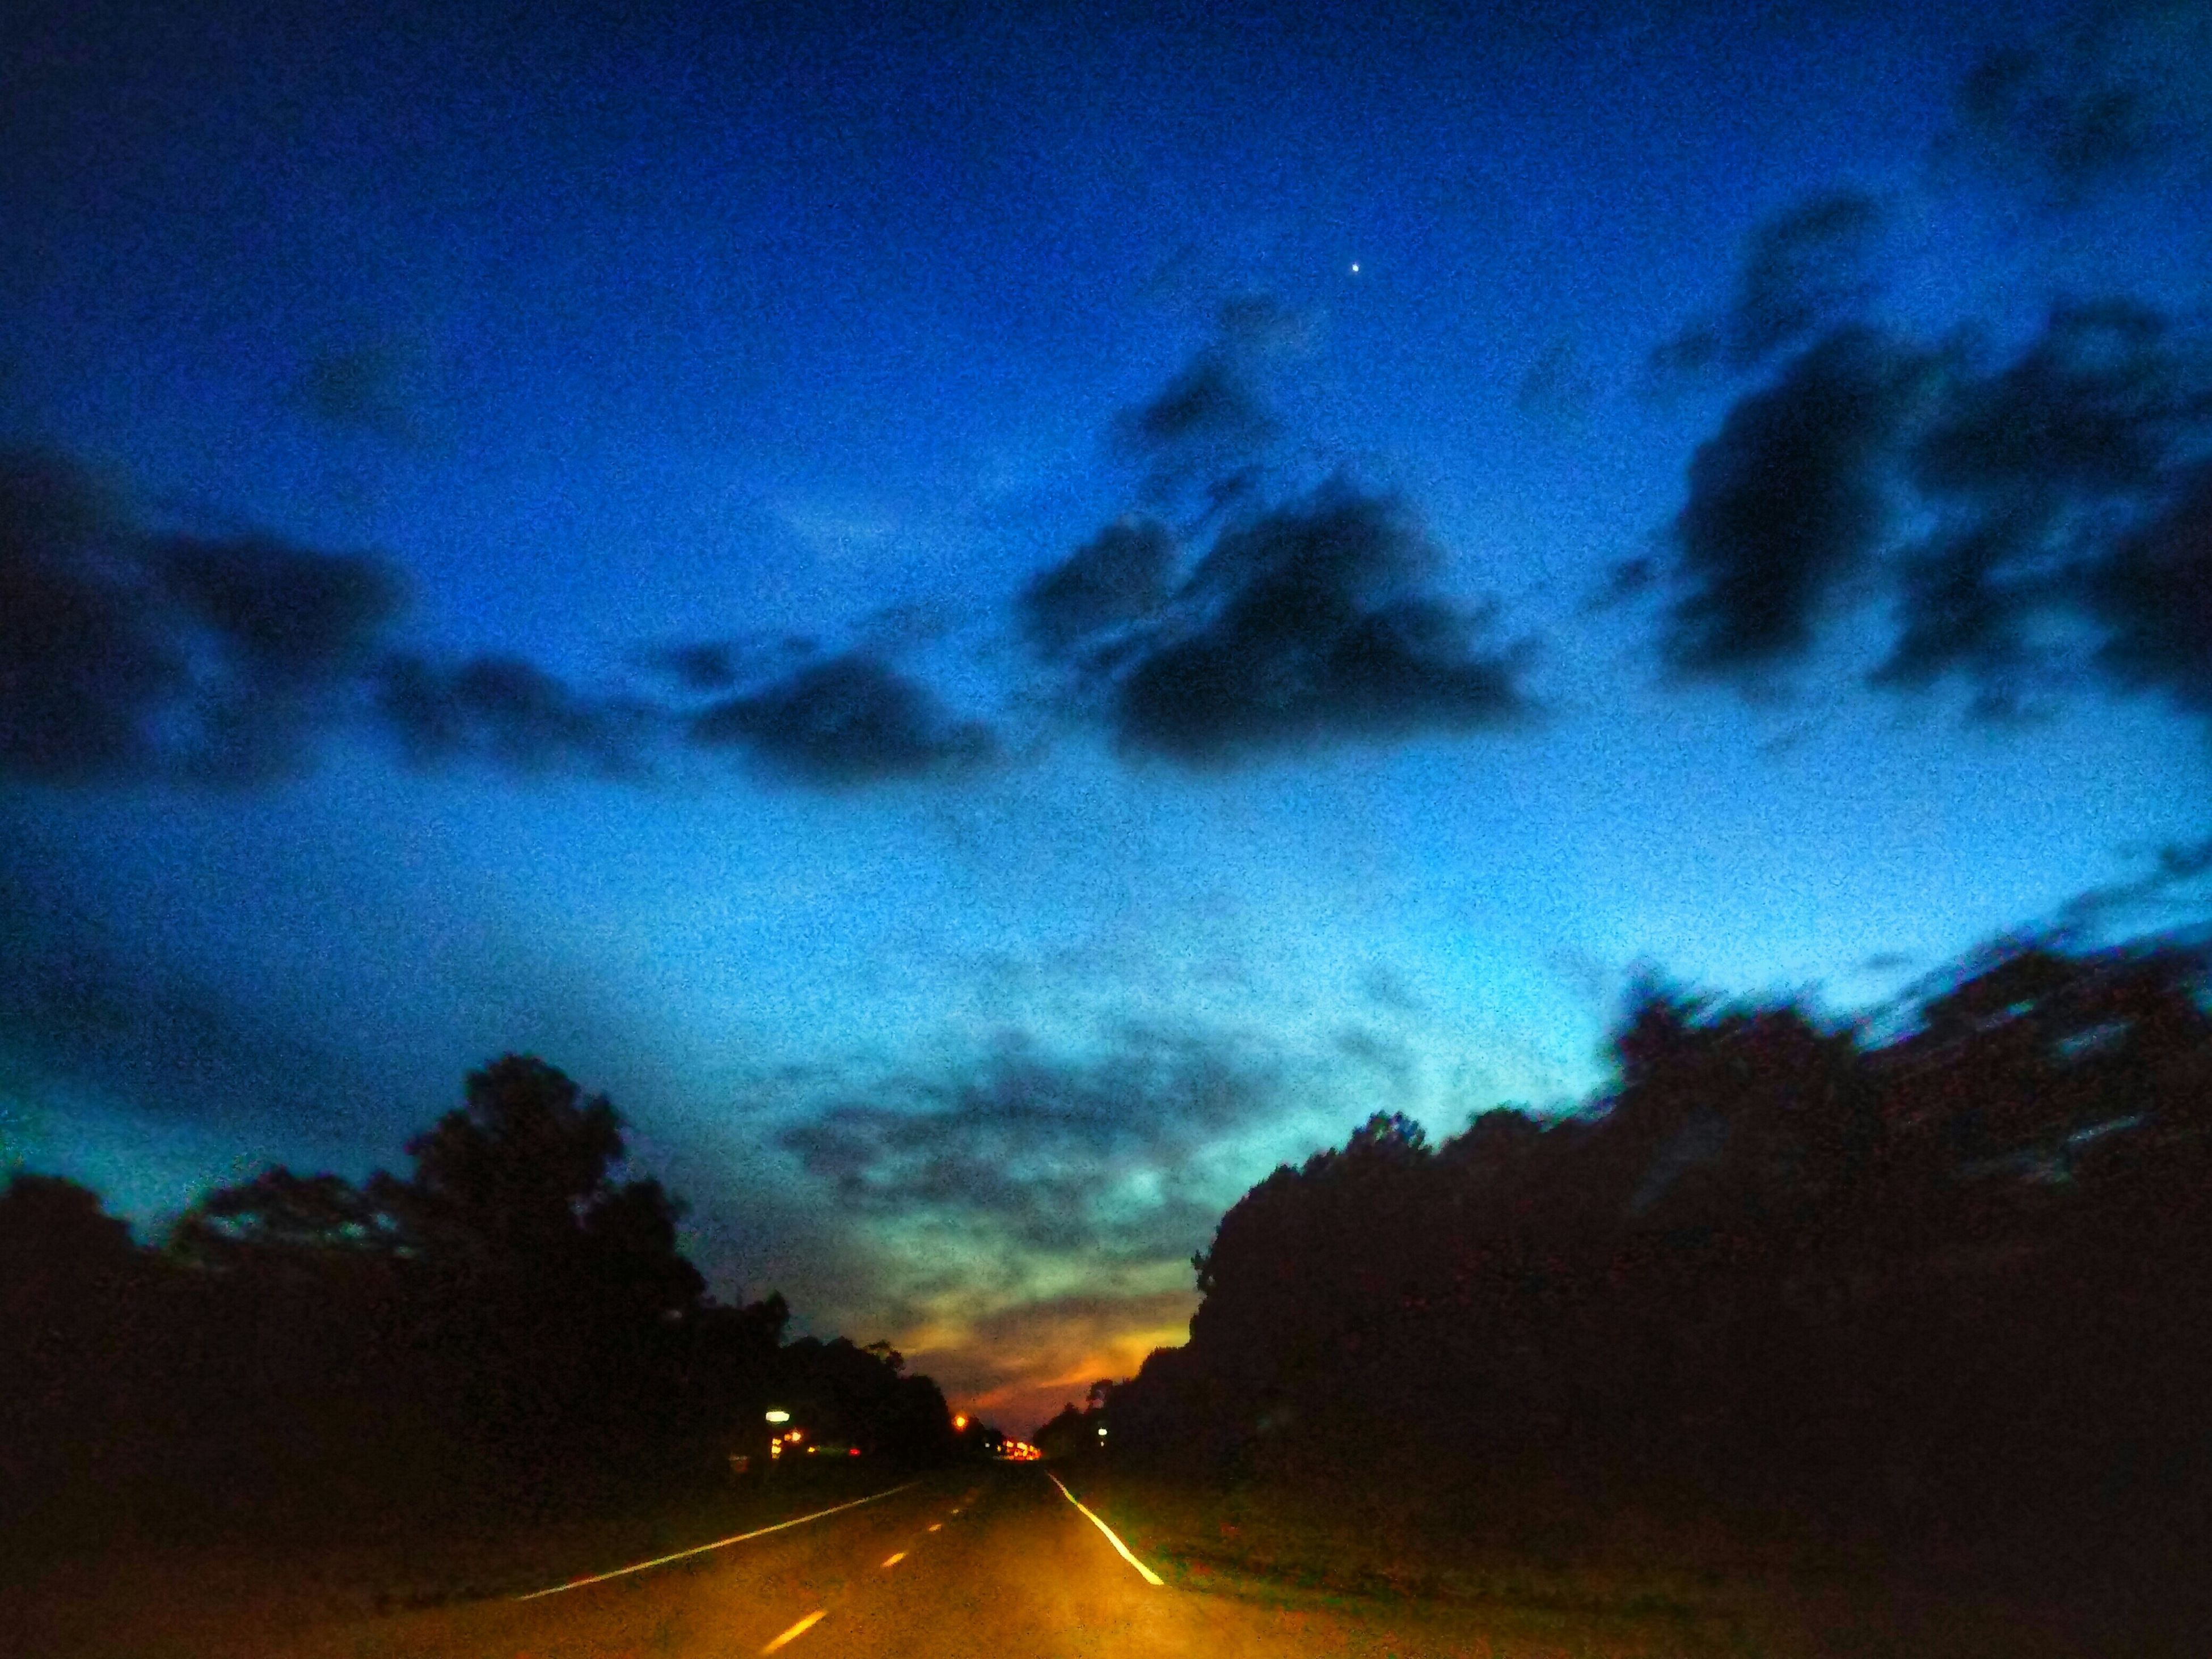 transportation, the way forward, sky, road, cloud - sky, diminishing perspective, vanishing point, car, road marking, cloudy, cloud, dusk, dramatic sky, silhouette, land vehicle, nature, street, sunset, outdoors, illuminated